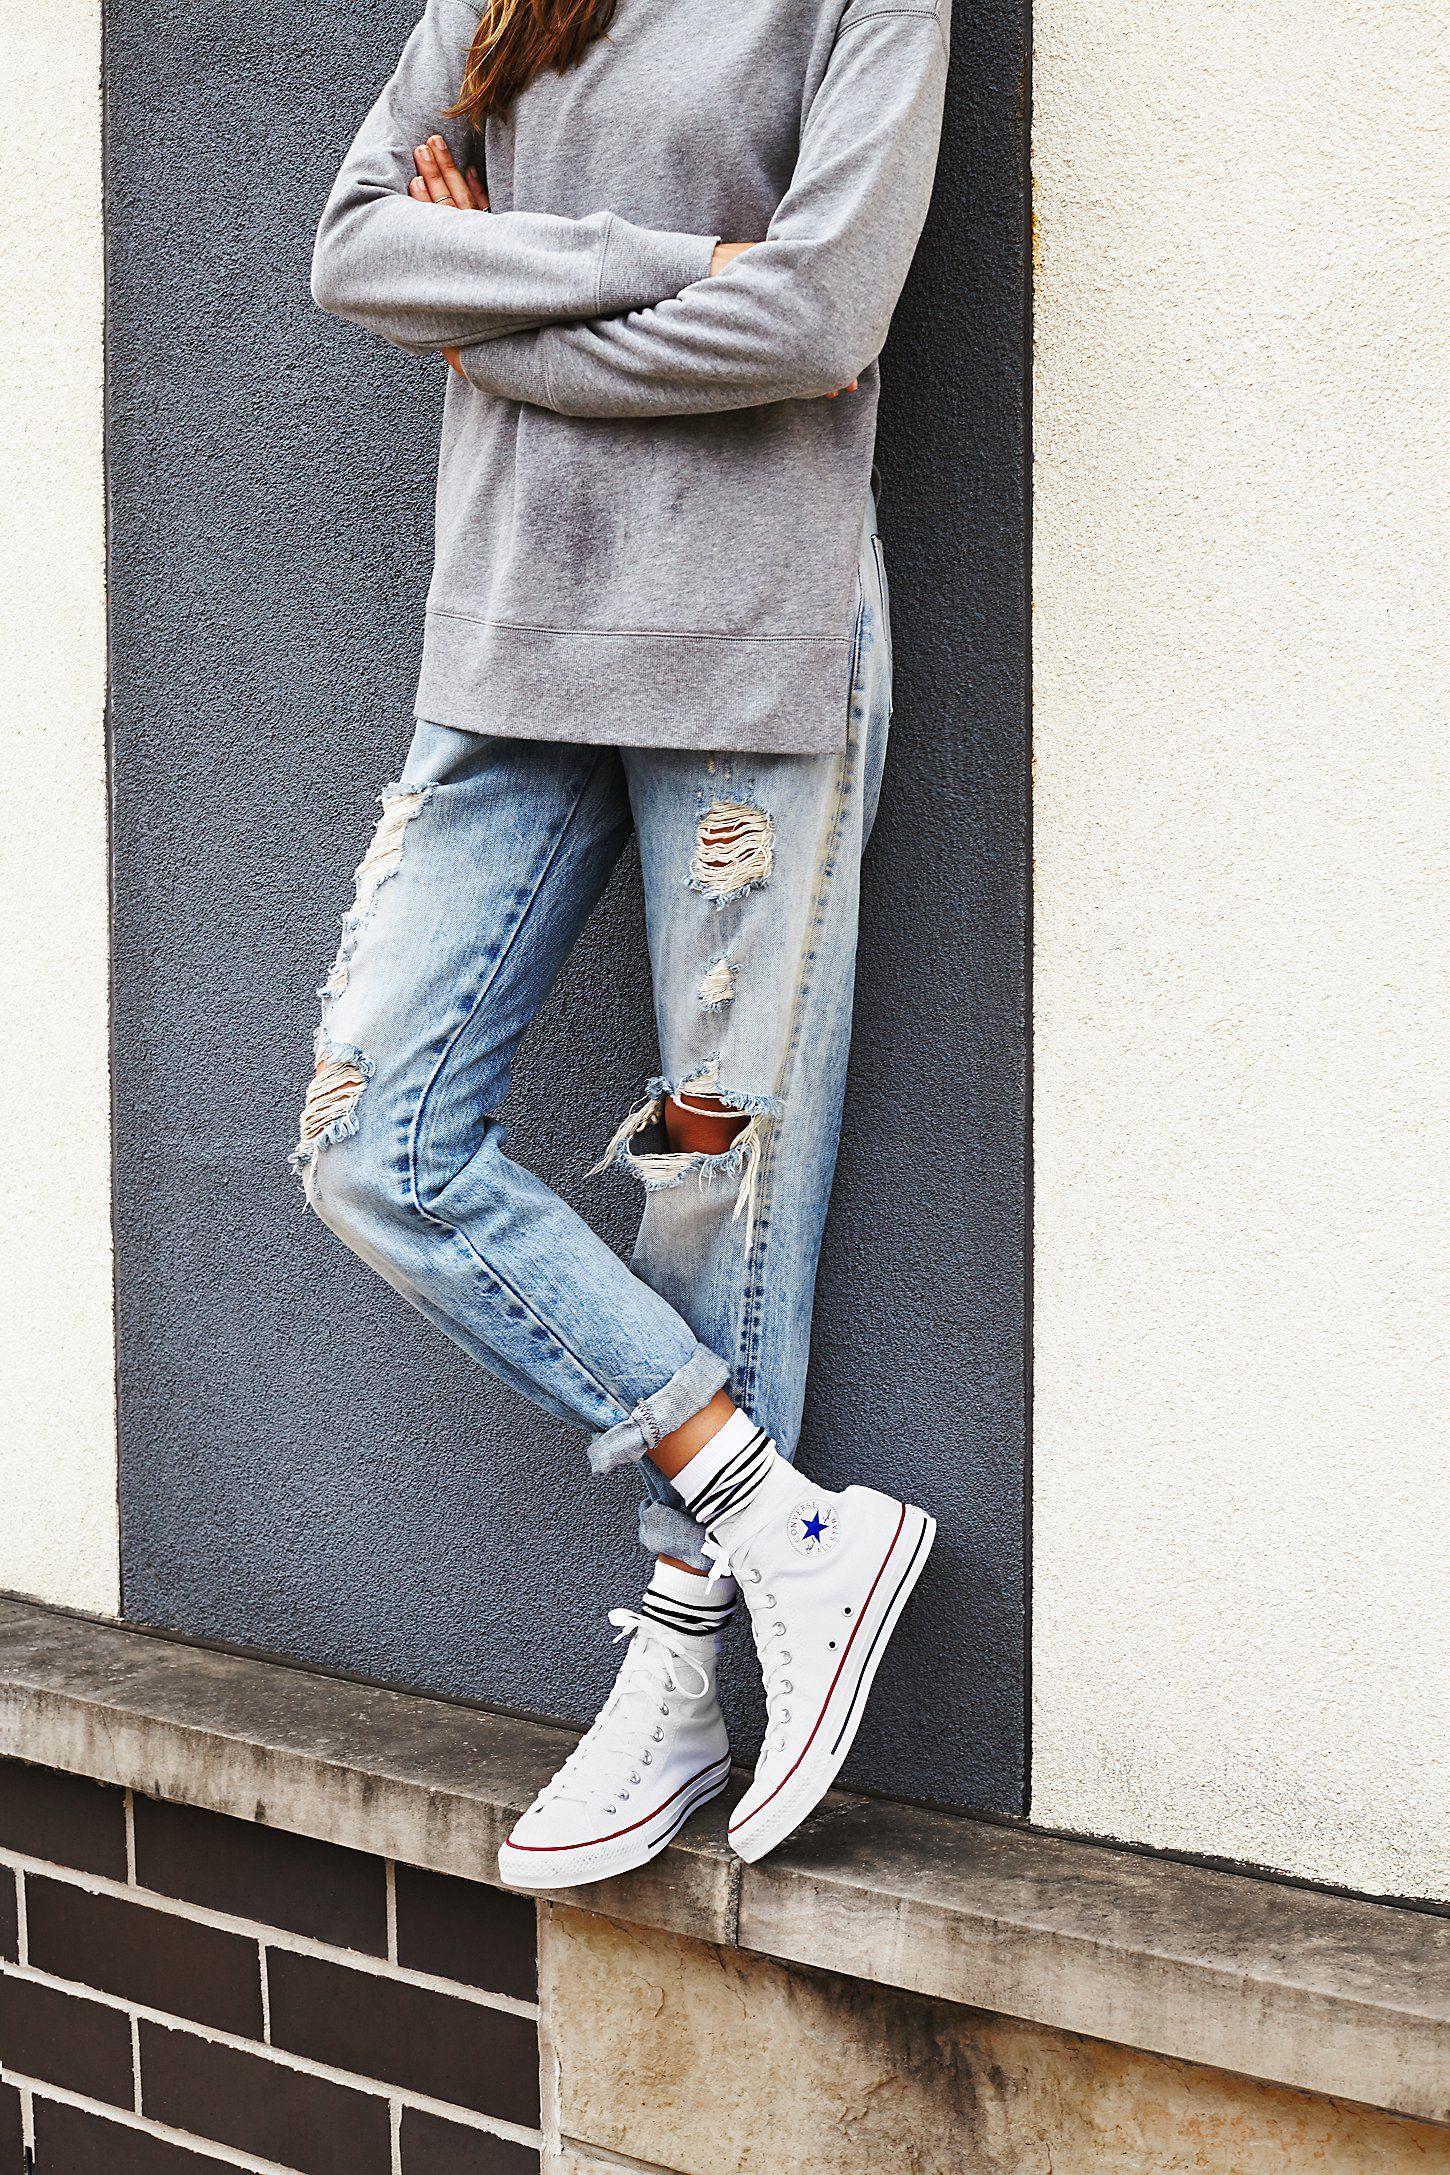 White converse outfits